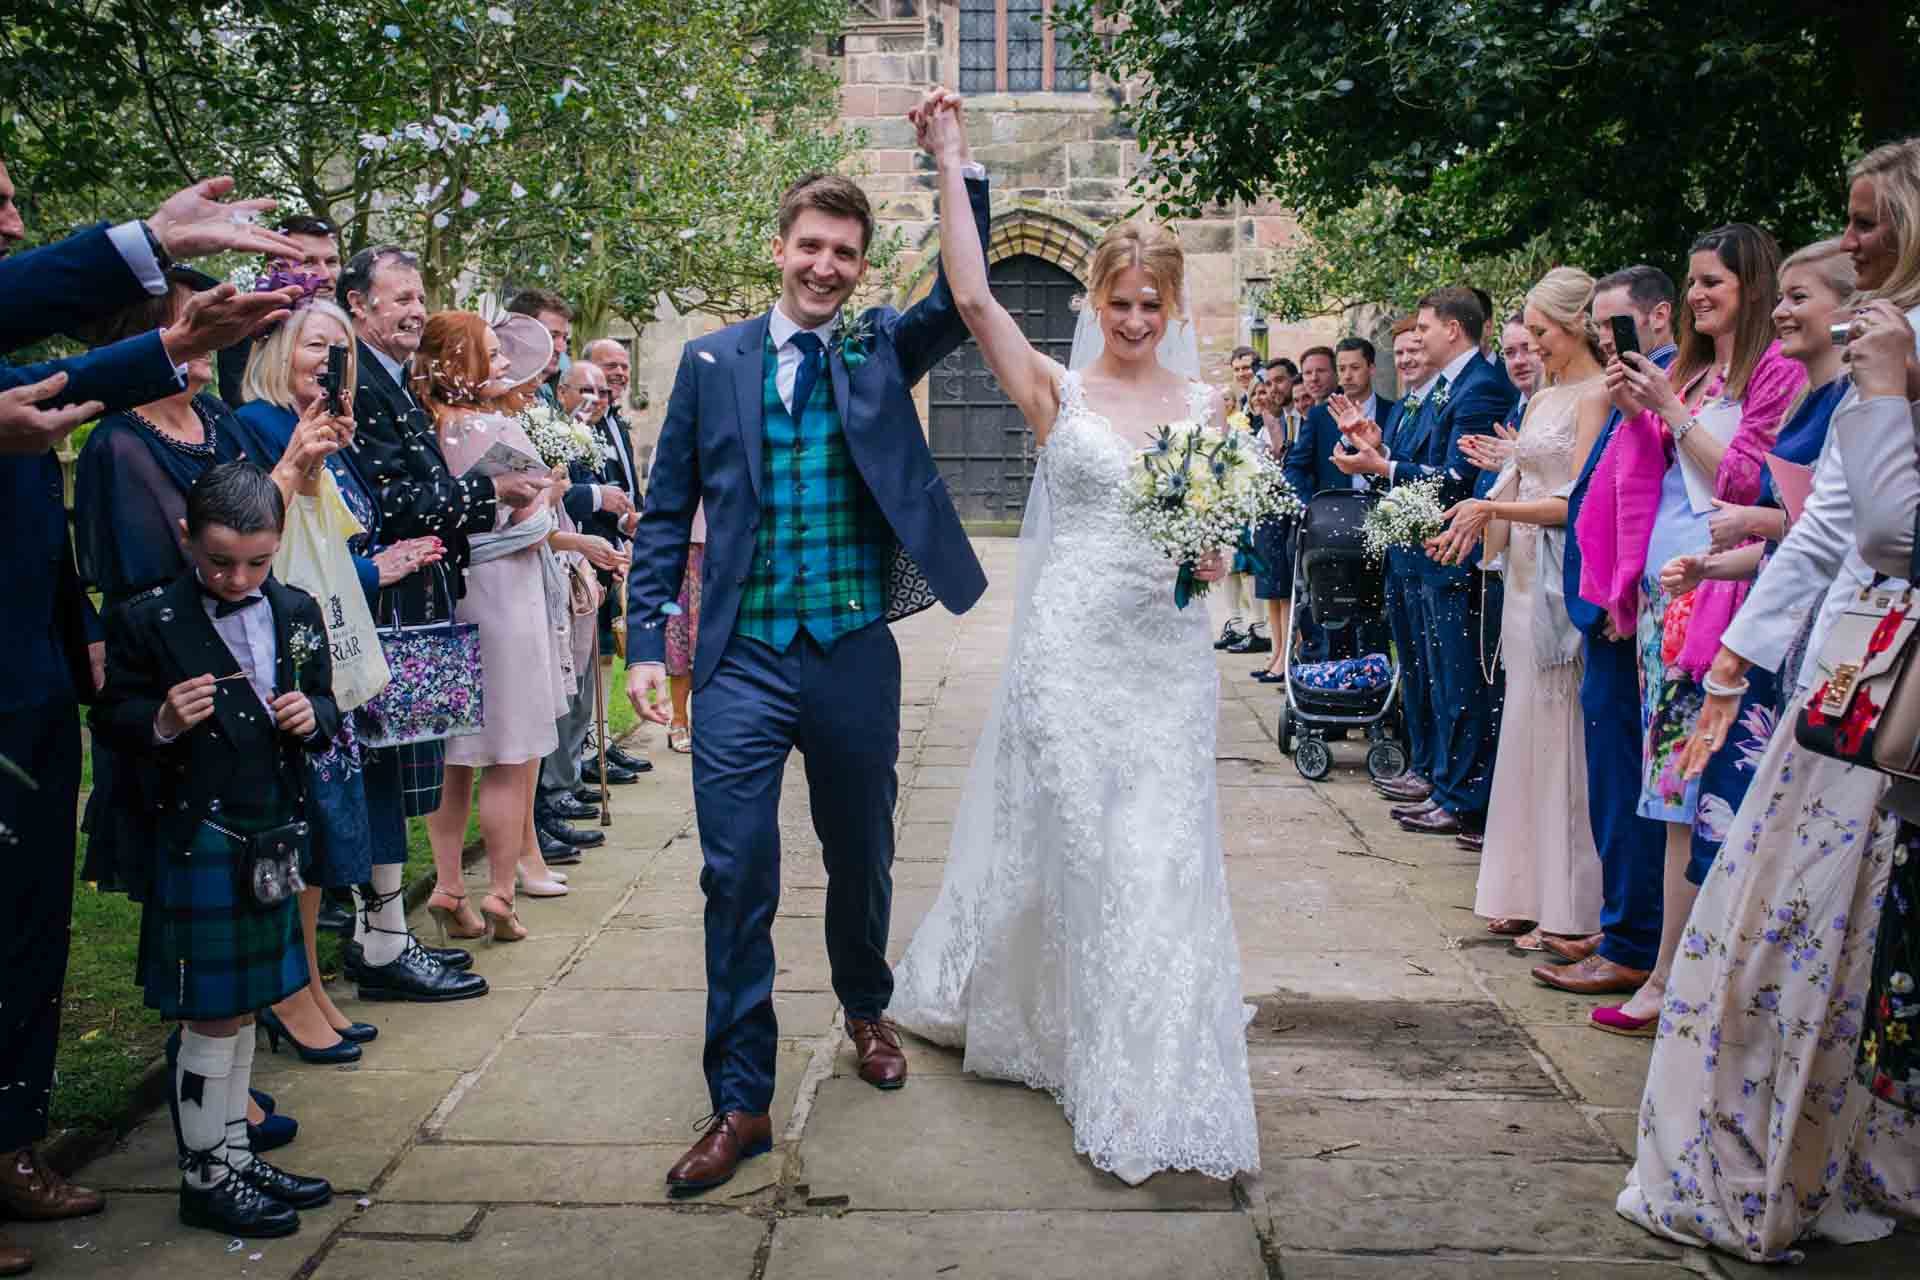 Alison & Joe's Prestbury Church Wedding, Cheshire - Joanna Eardley Photography